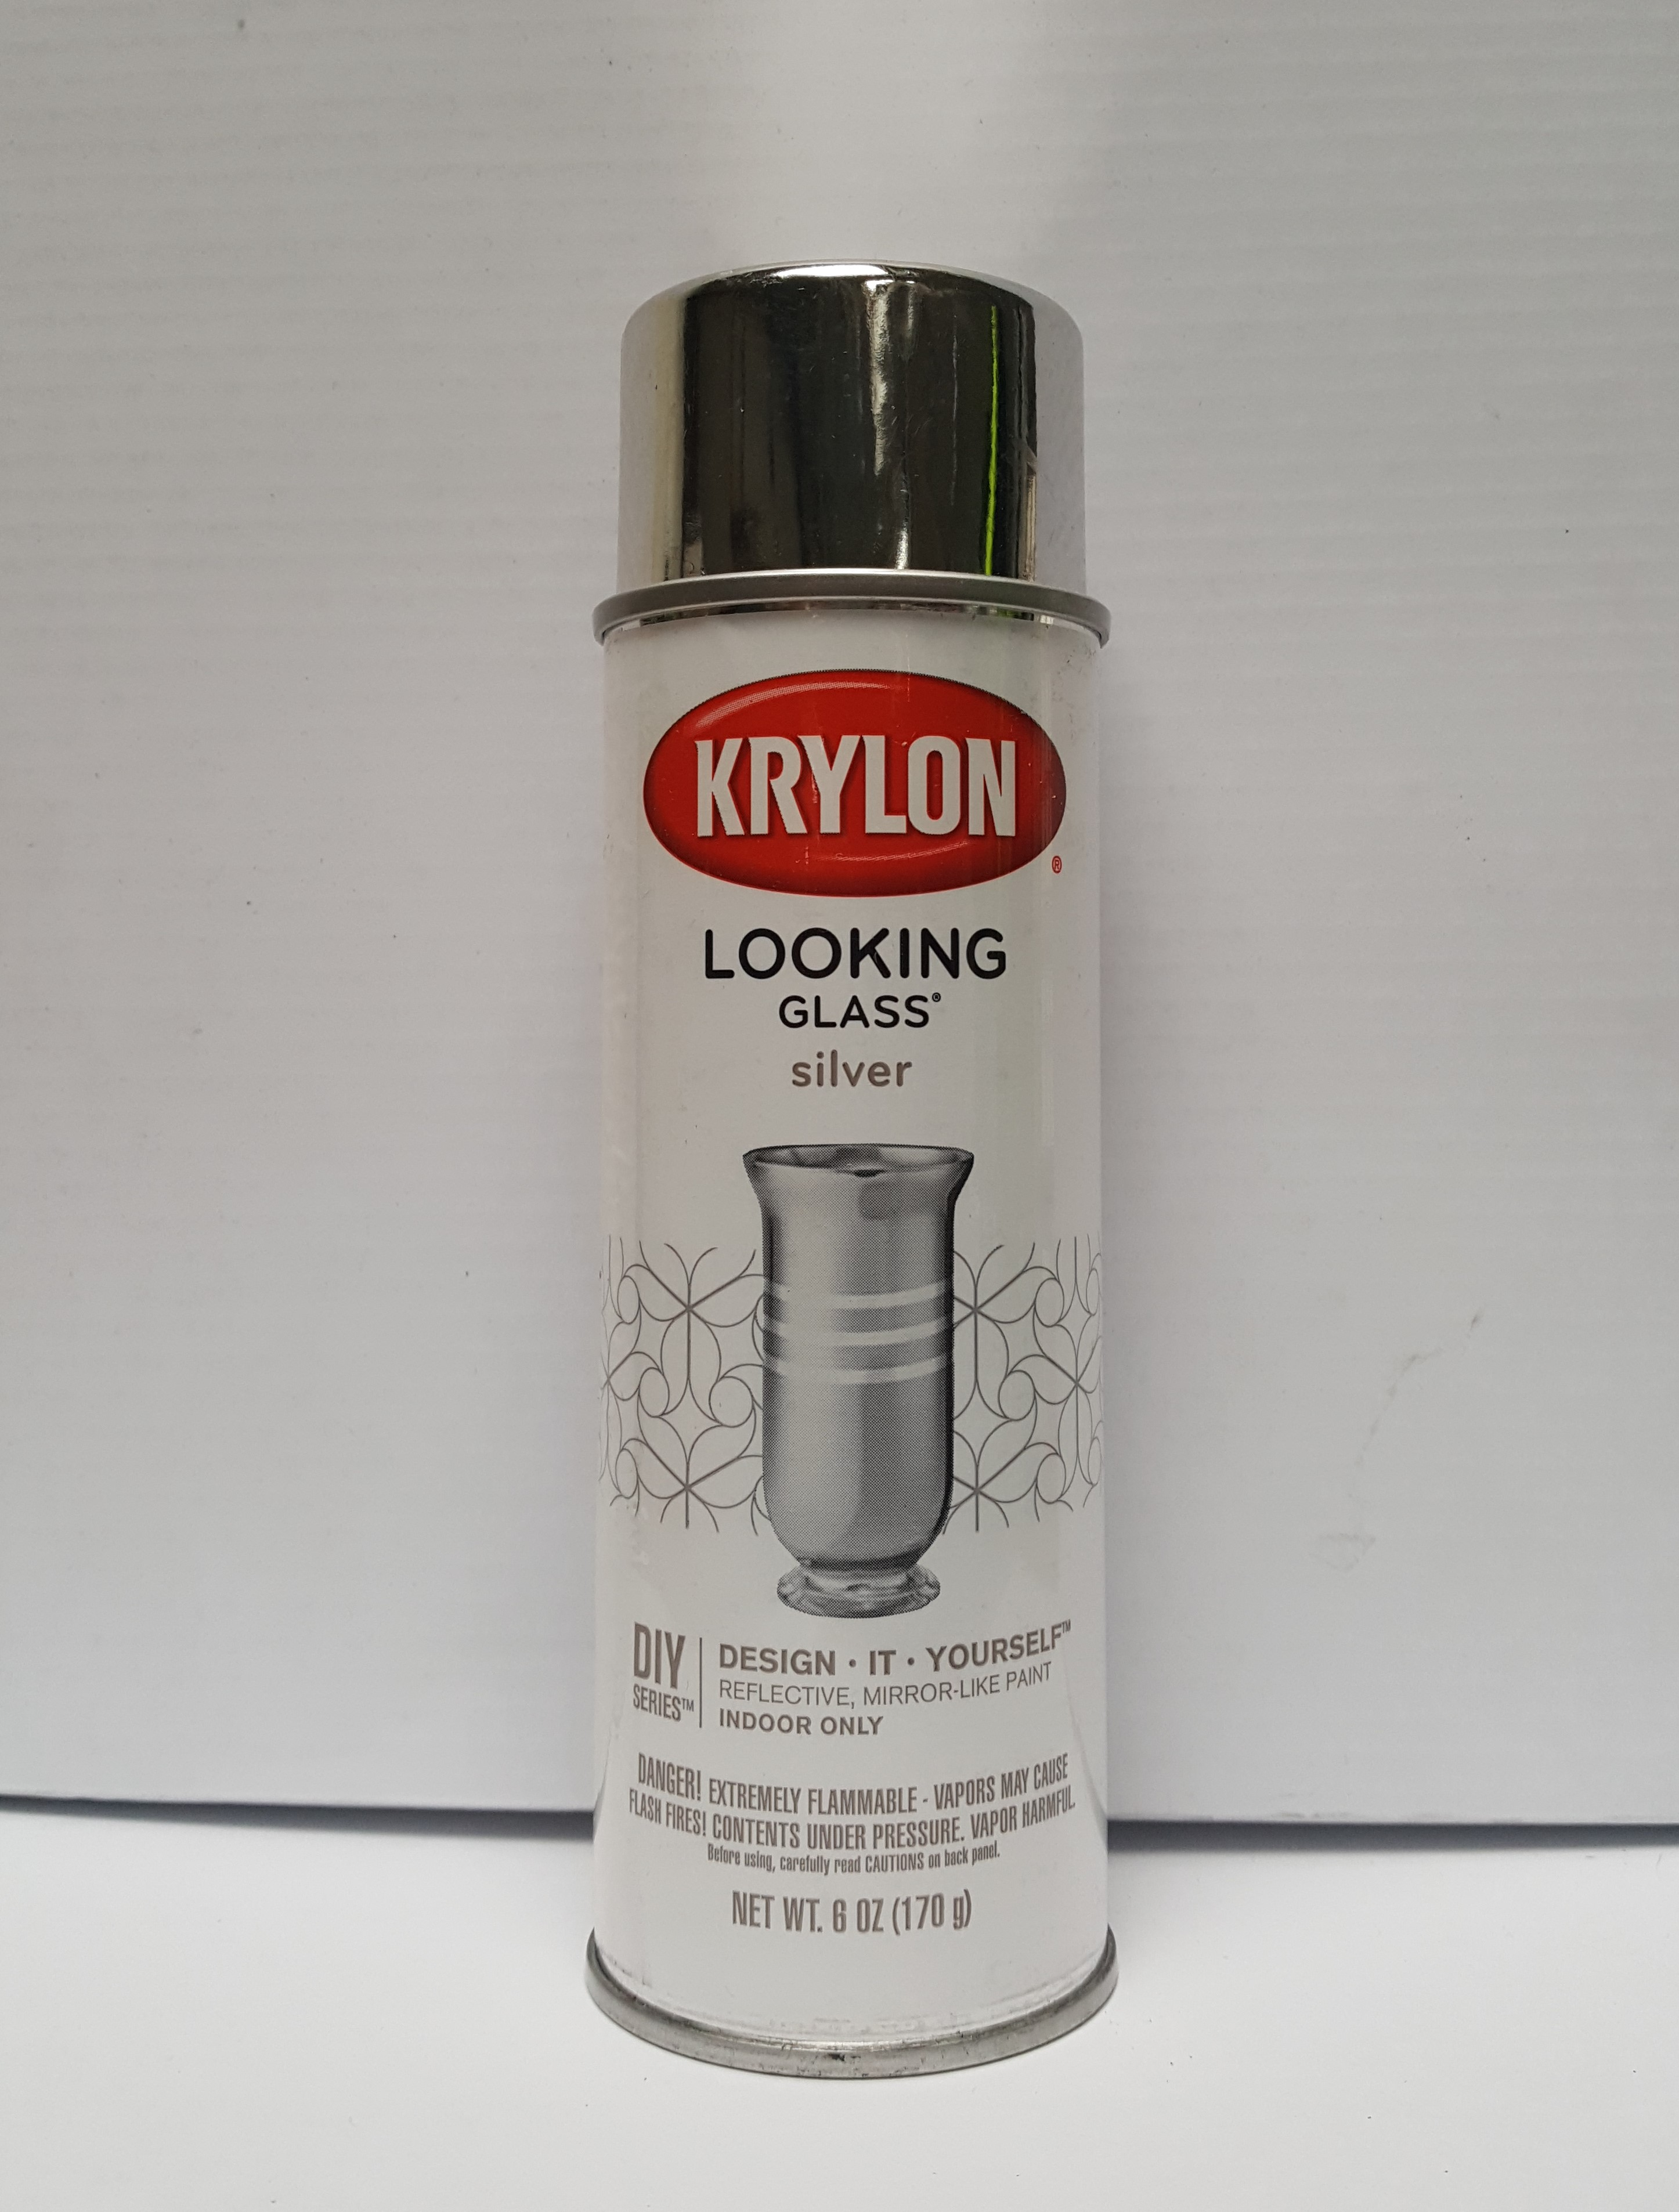 KRYLON Looking Glass Spray